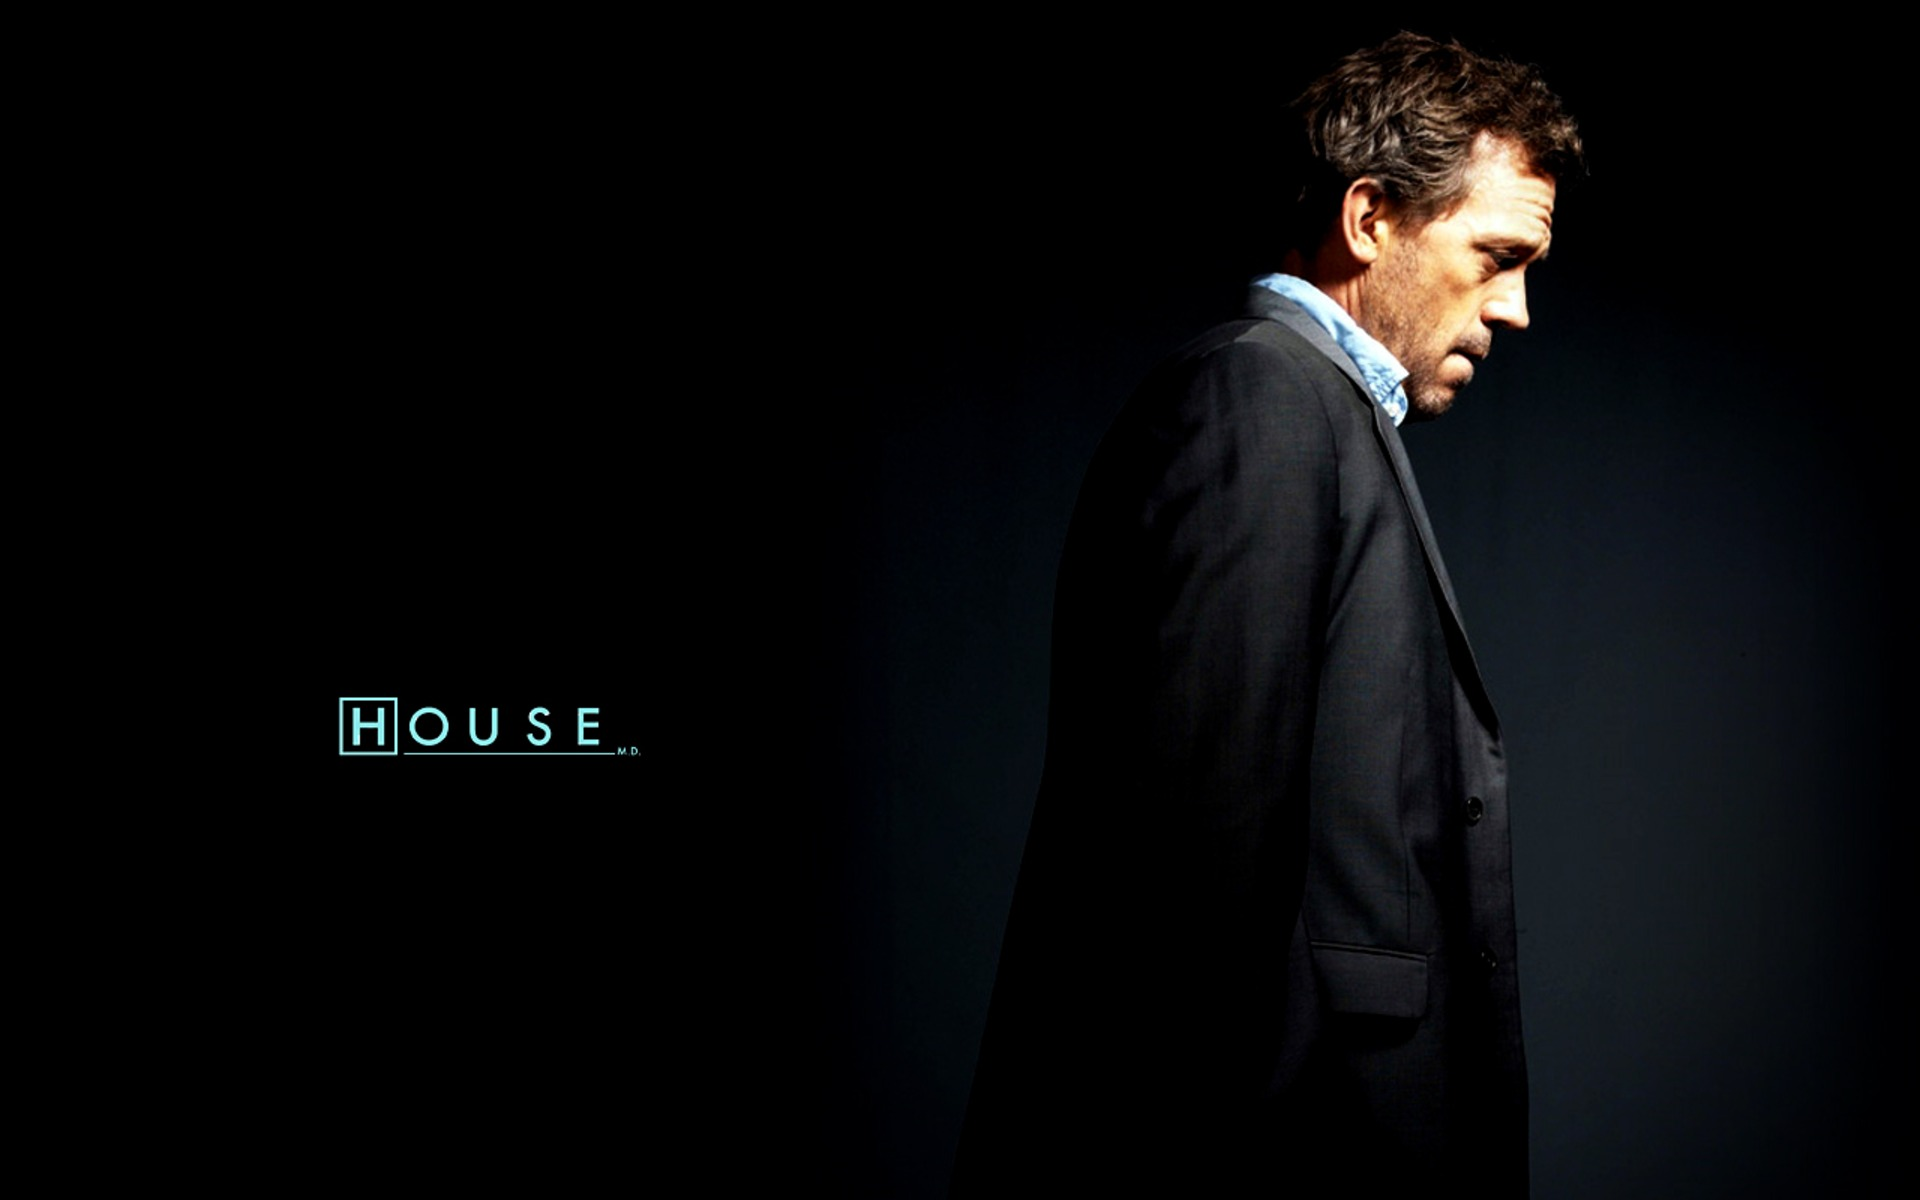 Hugh Laurie House Wallpaper  wallpaper Home Wallpapers and Home Backgrounds In HD For Download 1920x1200